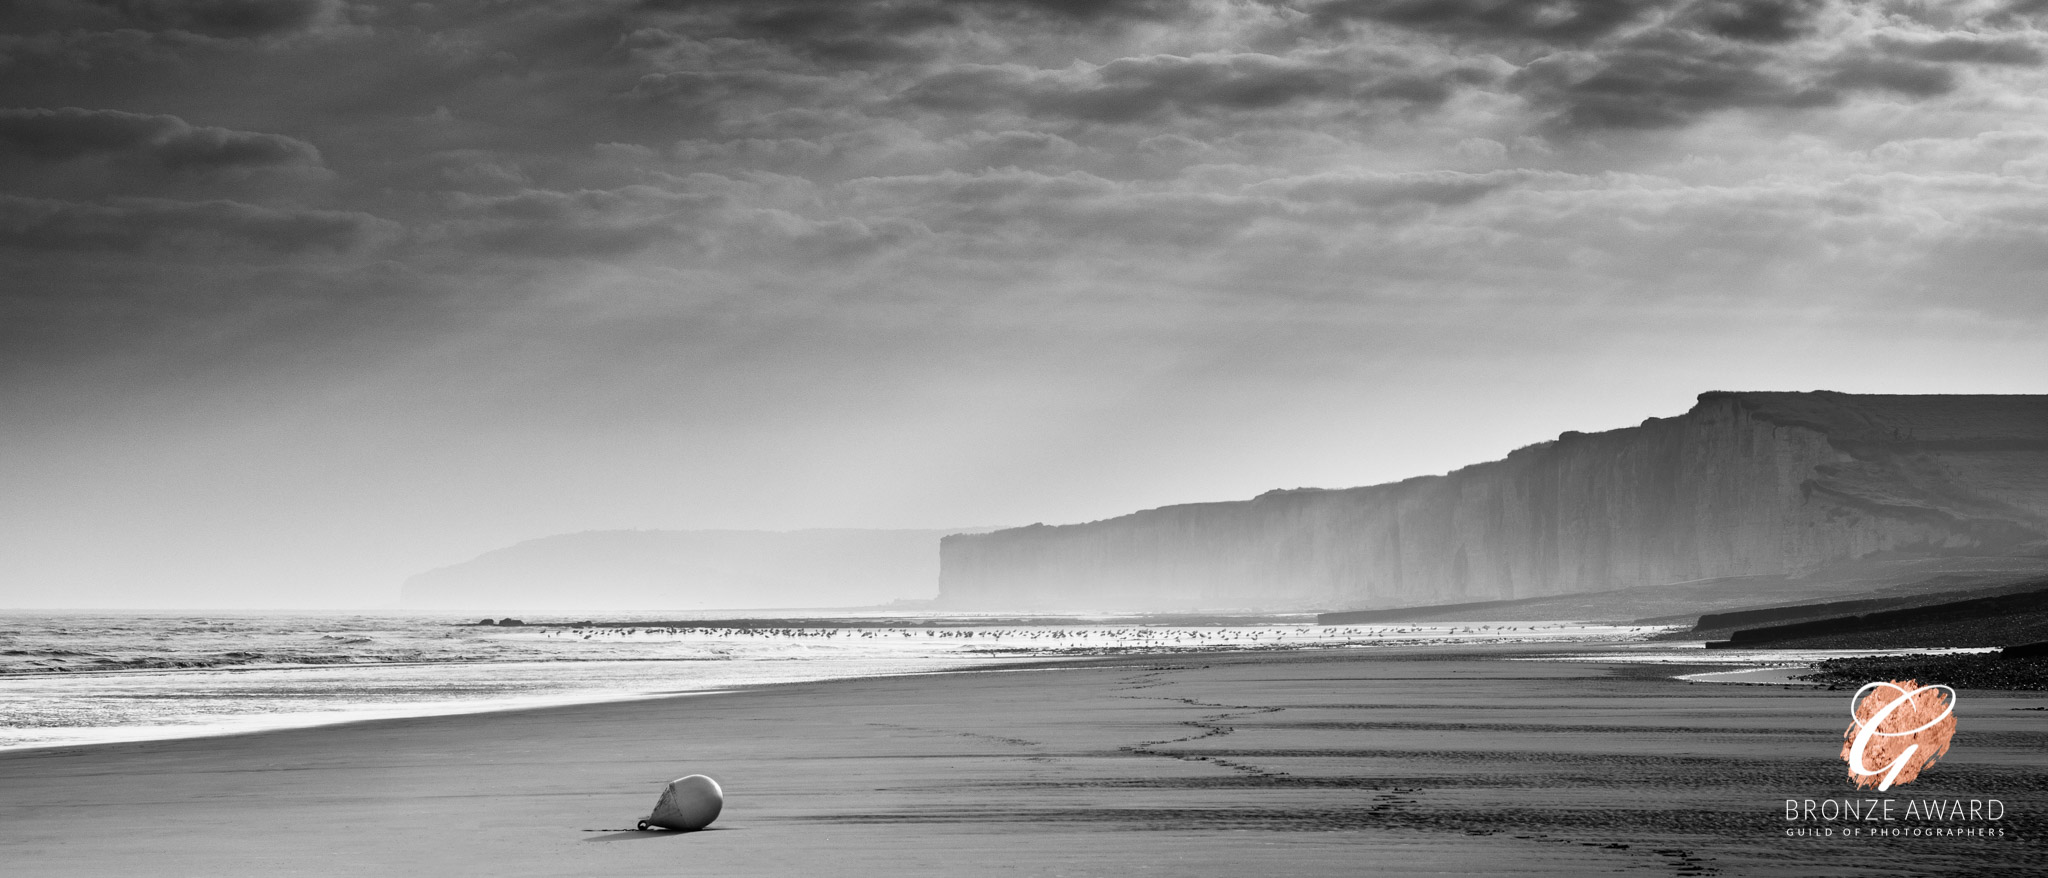 A black and white image of cliffs, dramatic sky and sea spray, taken from the beach.